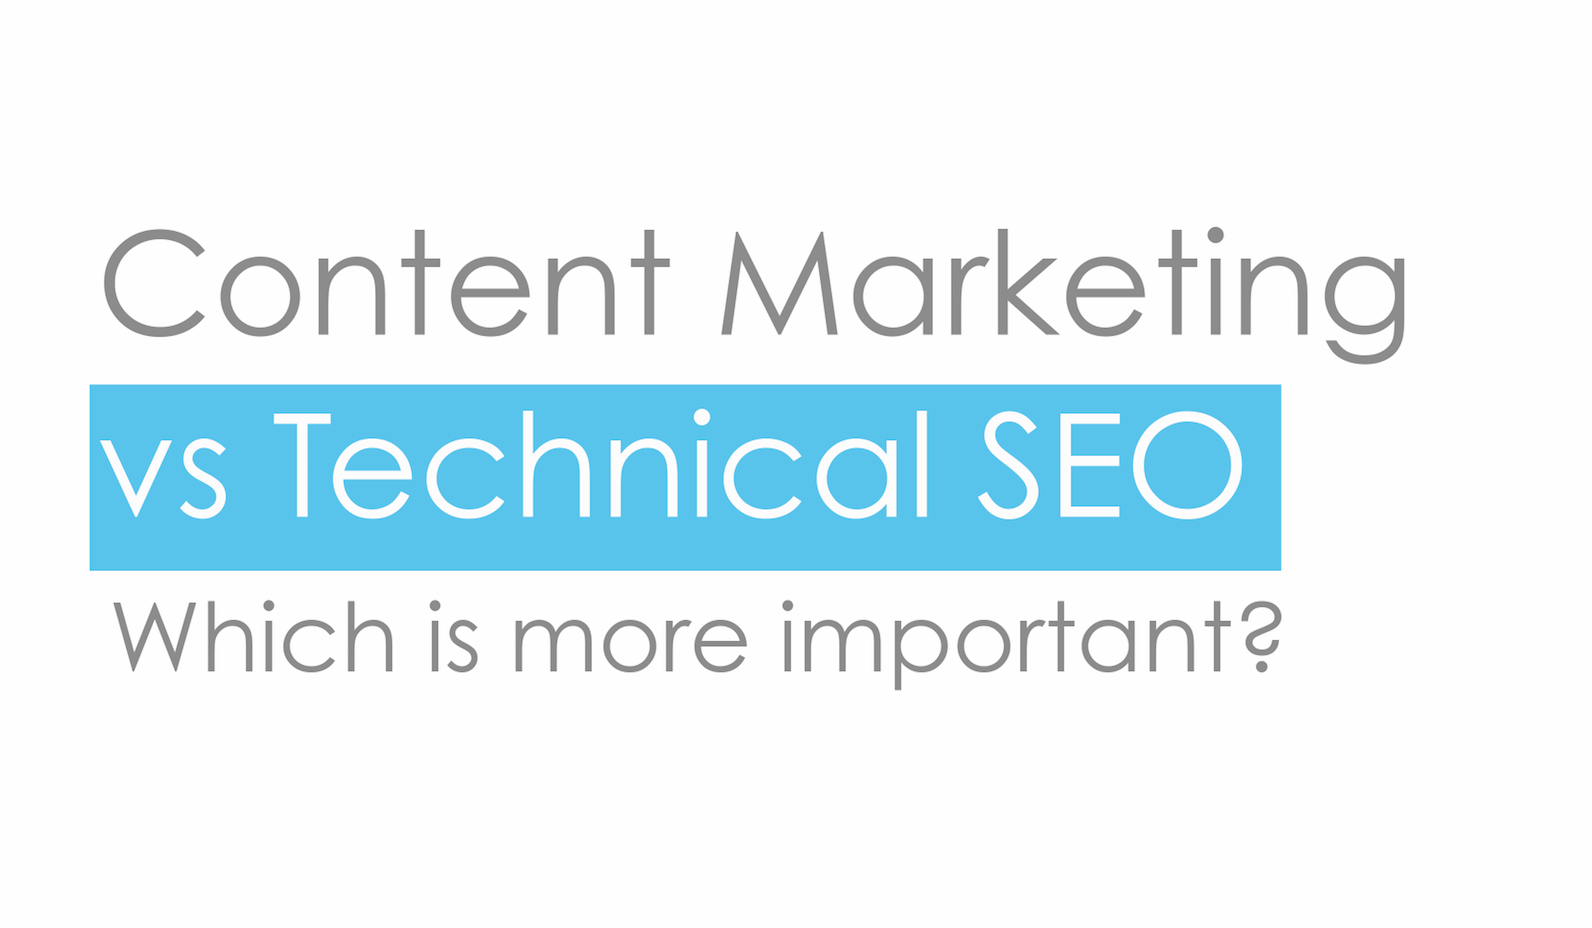 Content Marketing vs Technical SEO